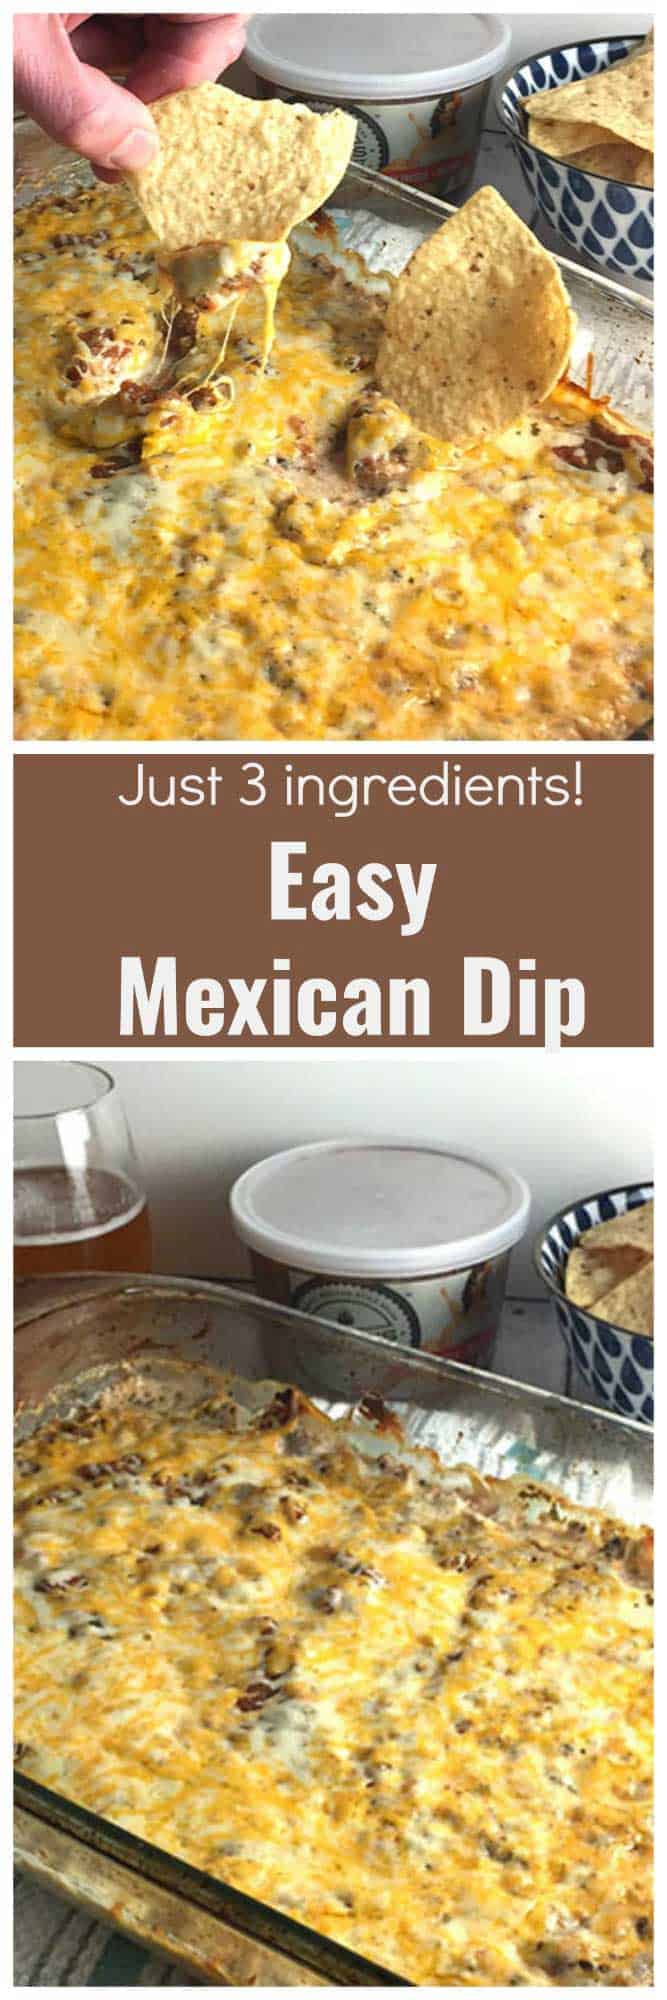 Dig into this Easy Mexican Dip and you will find it hard to stop! Just 3 ingredients! #mexicandip #salsa #ad